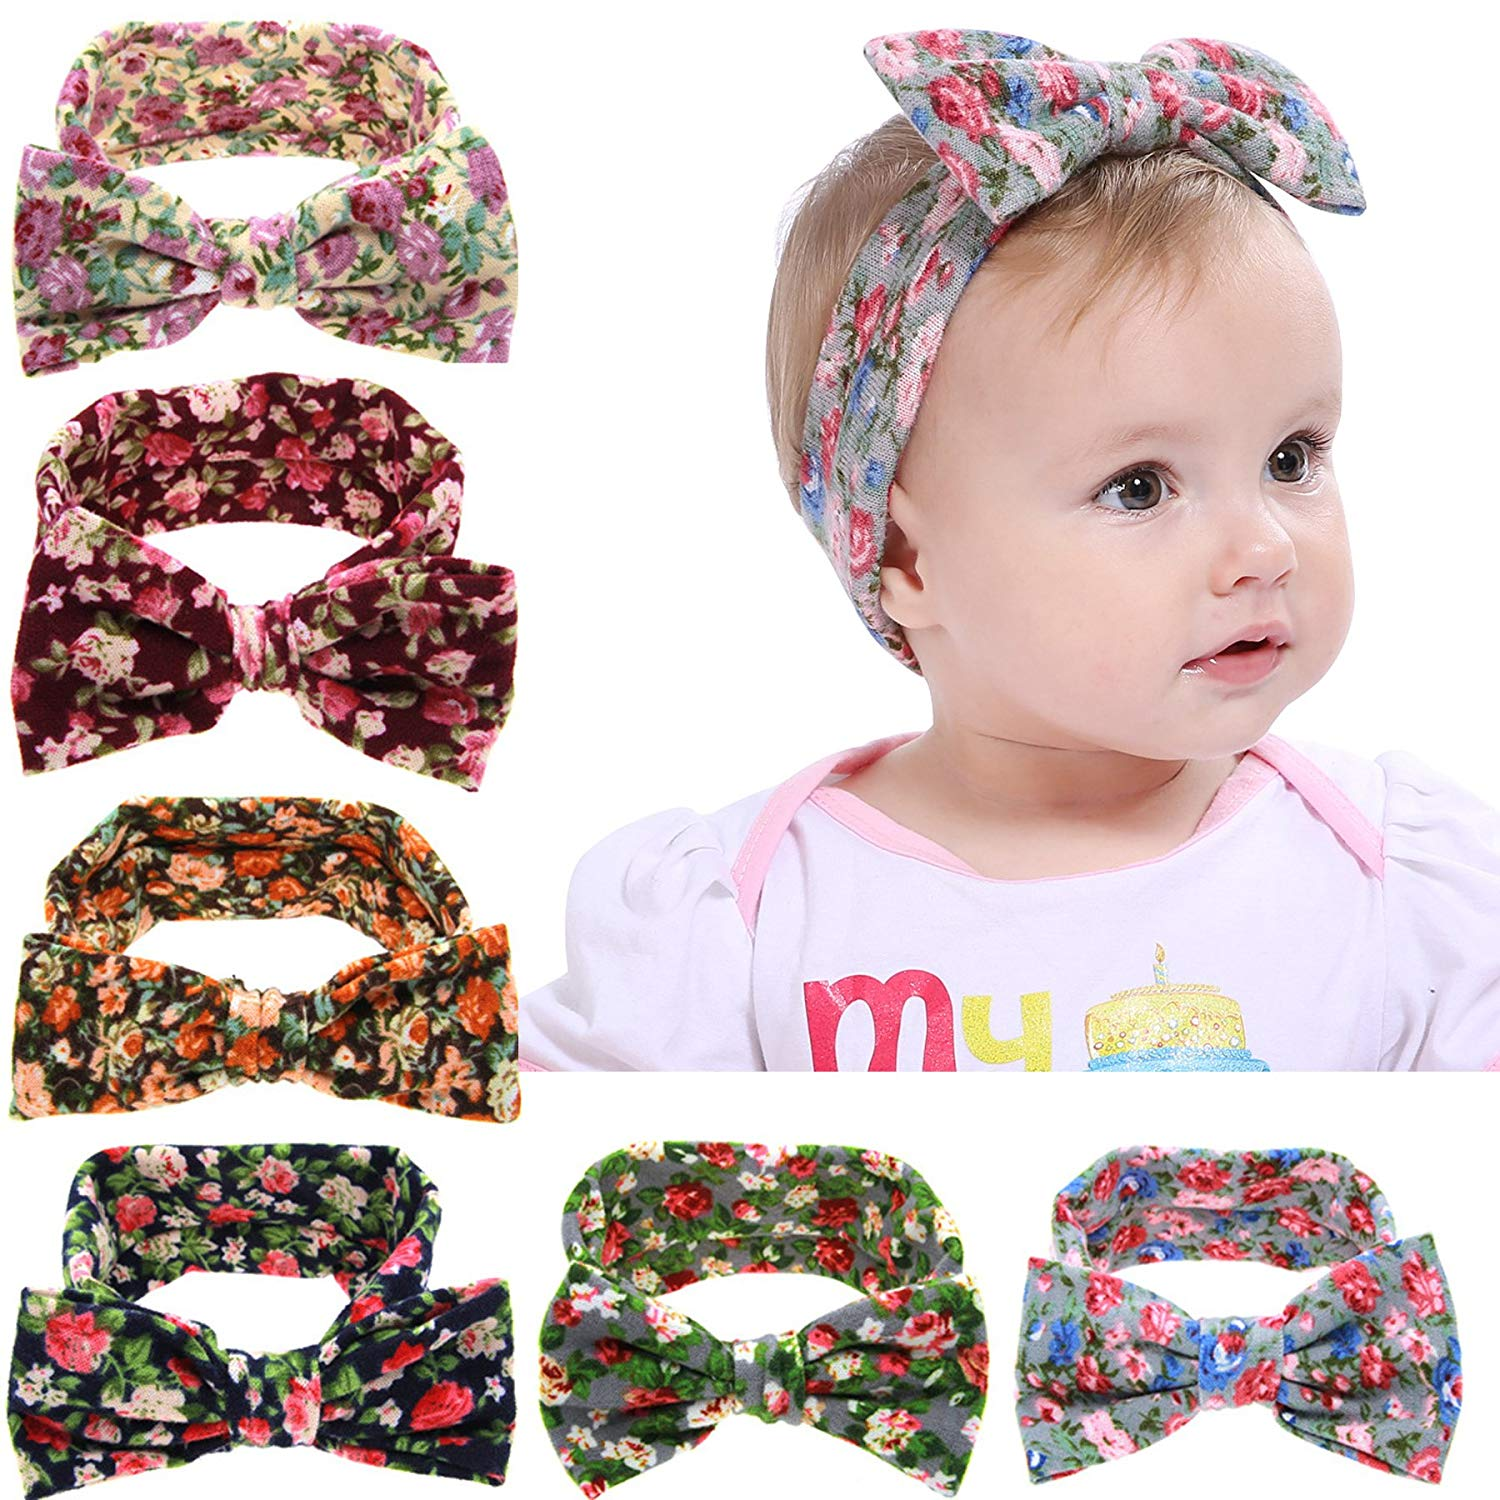 2e7f606adb9 Get Quotations · Baby Girl Newest Round Dot Turban Headband Head Wrap  Knotted Hair Band 6pcs